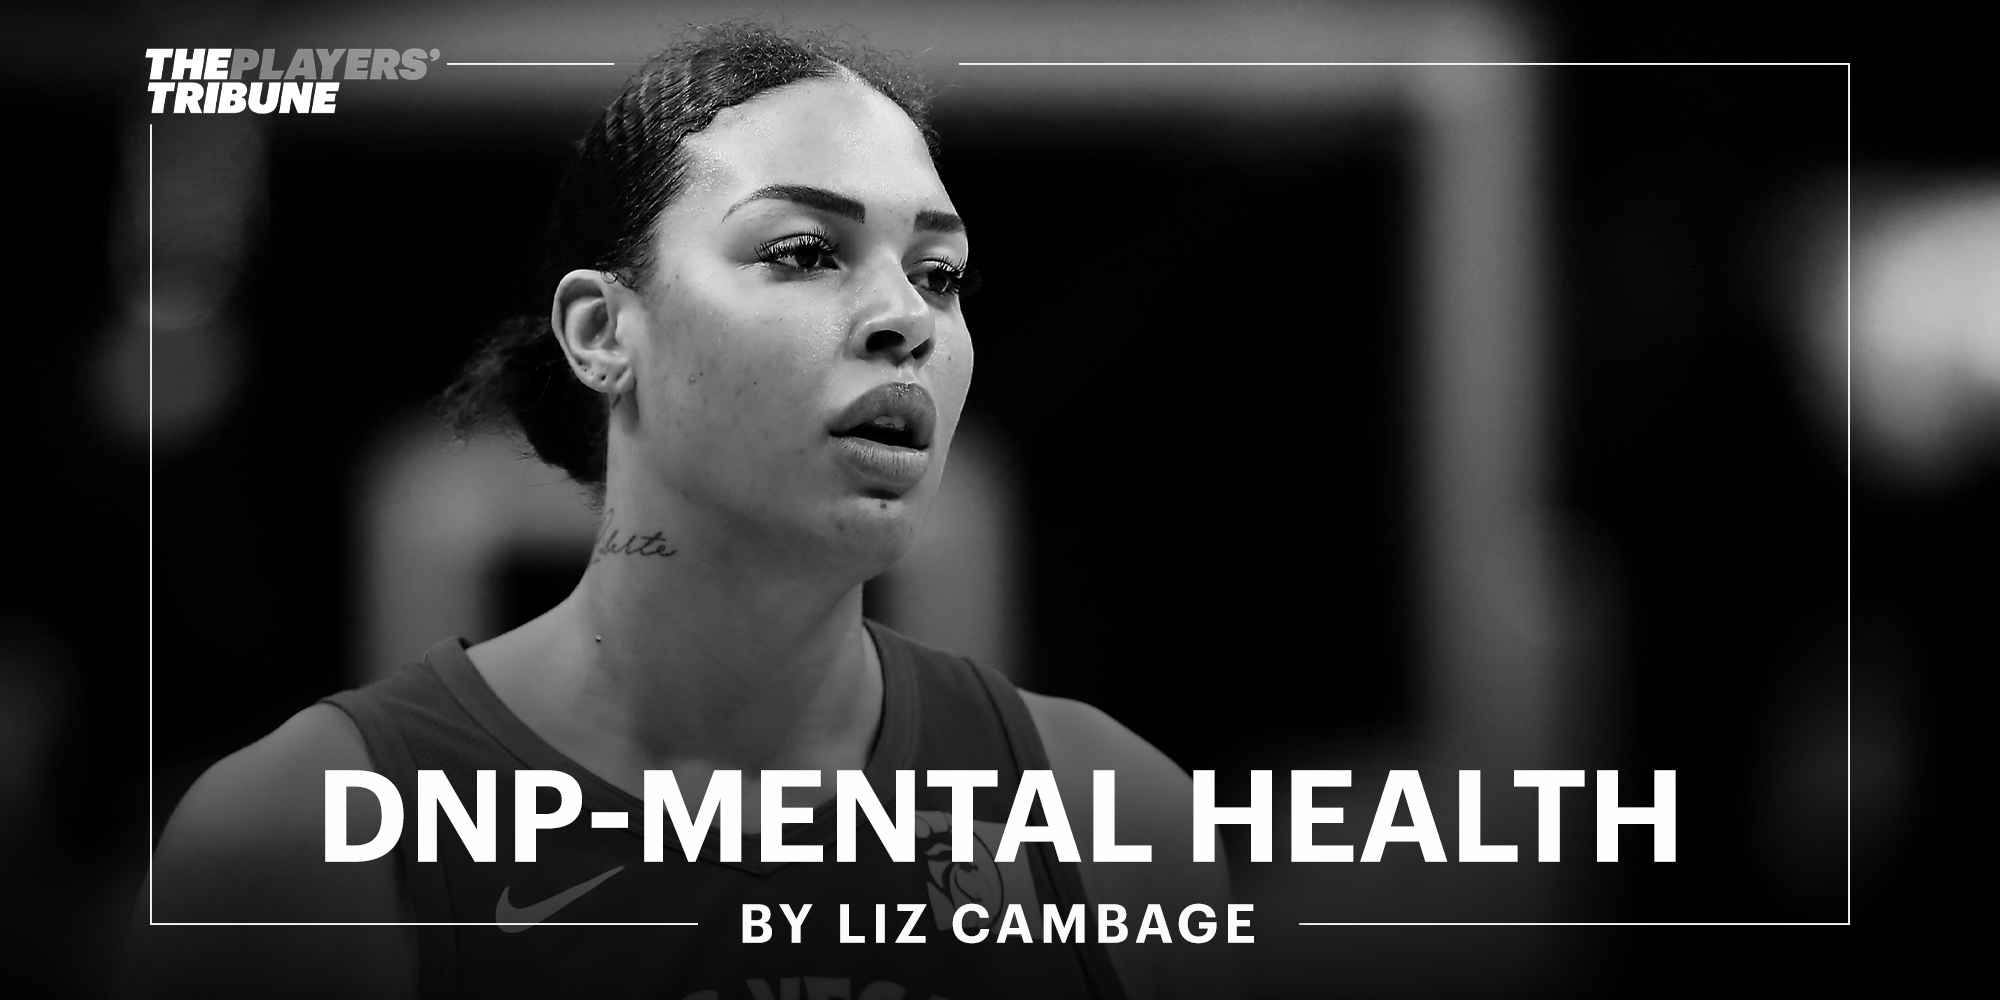 https://www.theplayerstribune.com/en-us/articles/liz-cambage-mental-health